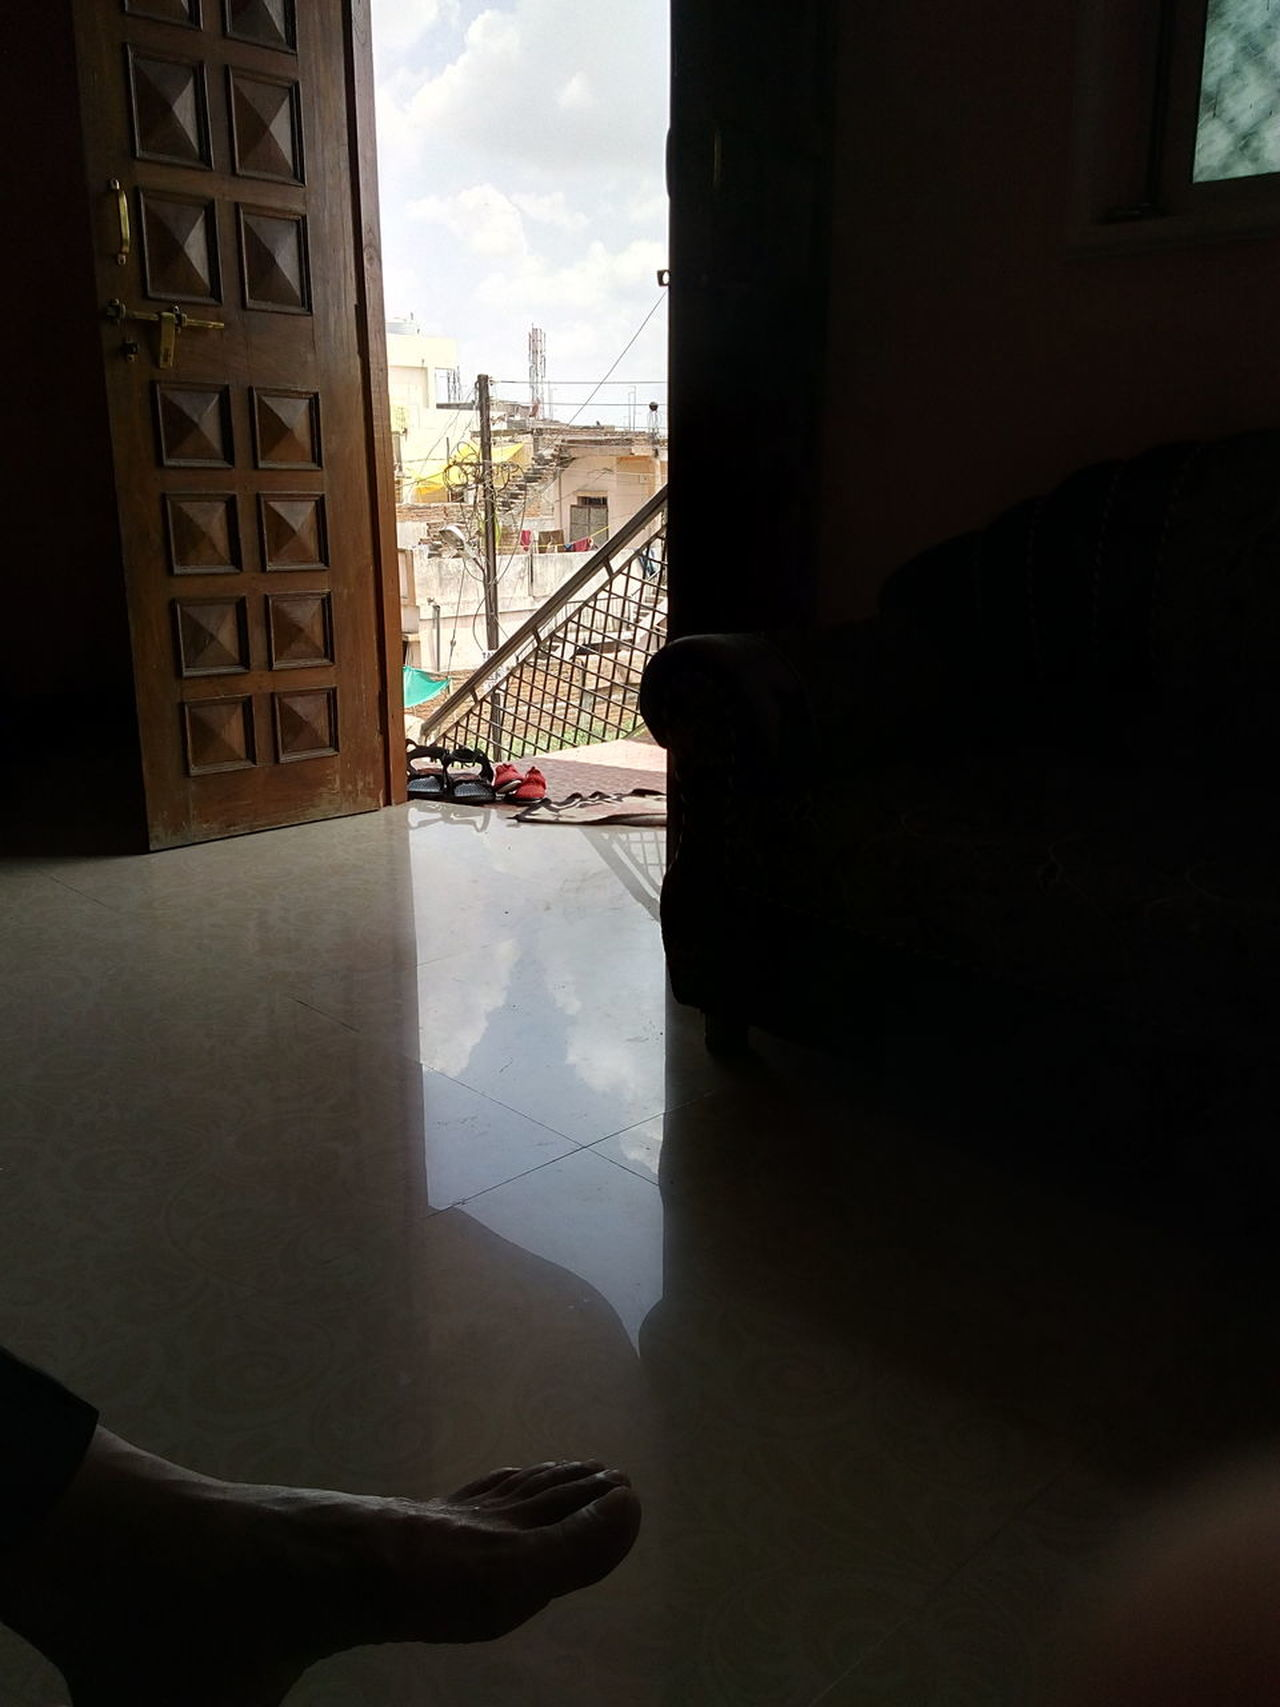 Heyyyy, Indoor Photography Floor Reflection Dark Photography Blue Sky Slum Area Father Aside Desingner Doors First Floor But Still A Lot To See In Nagpur,India